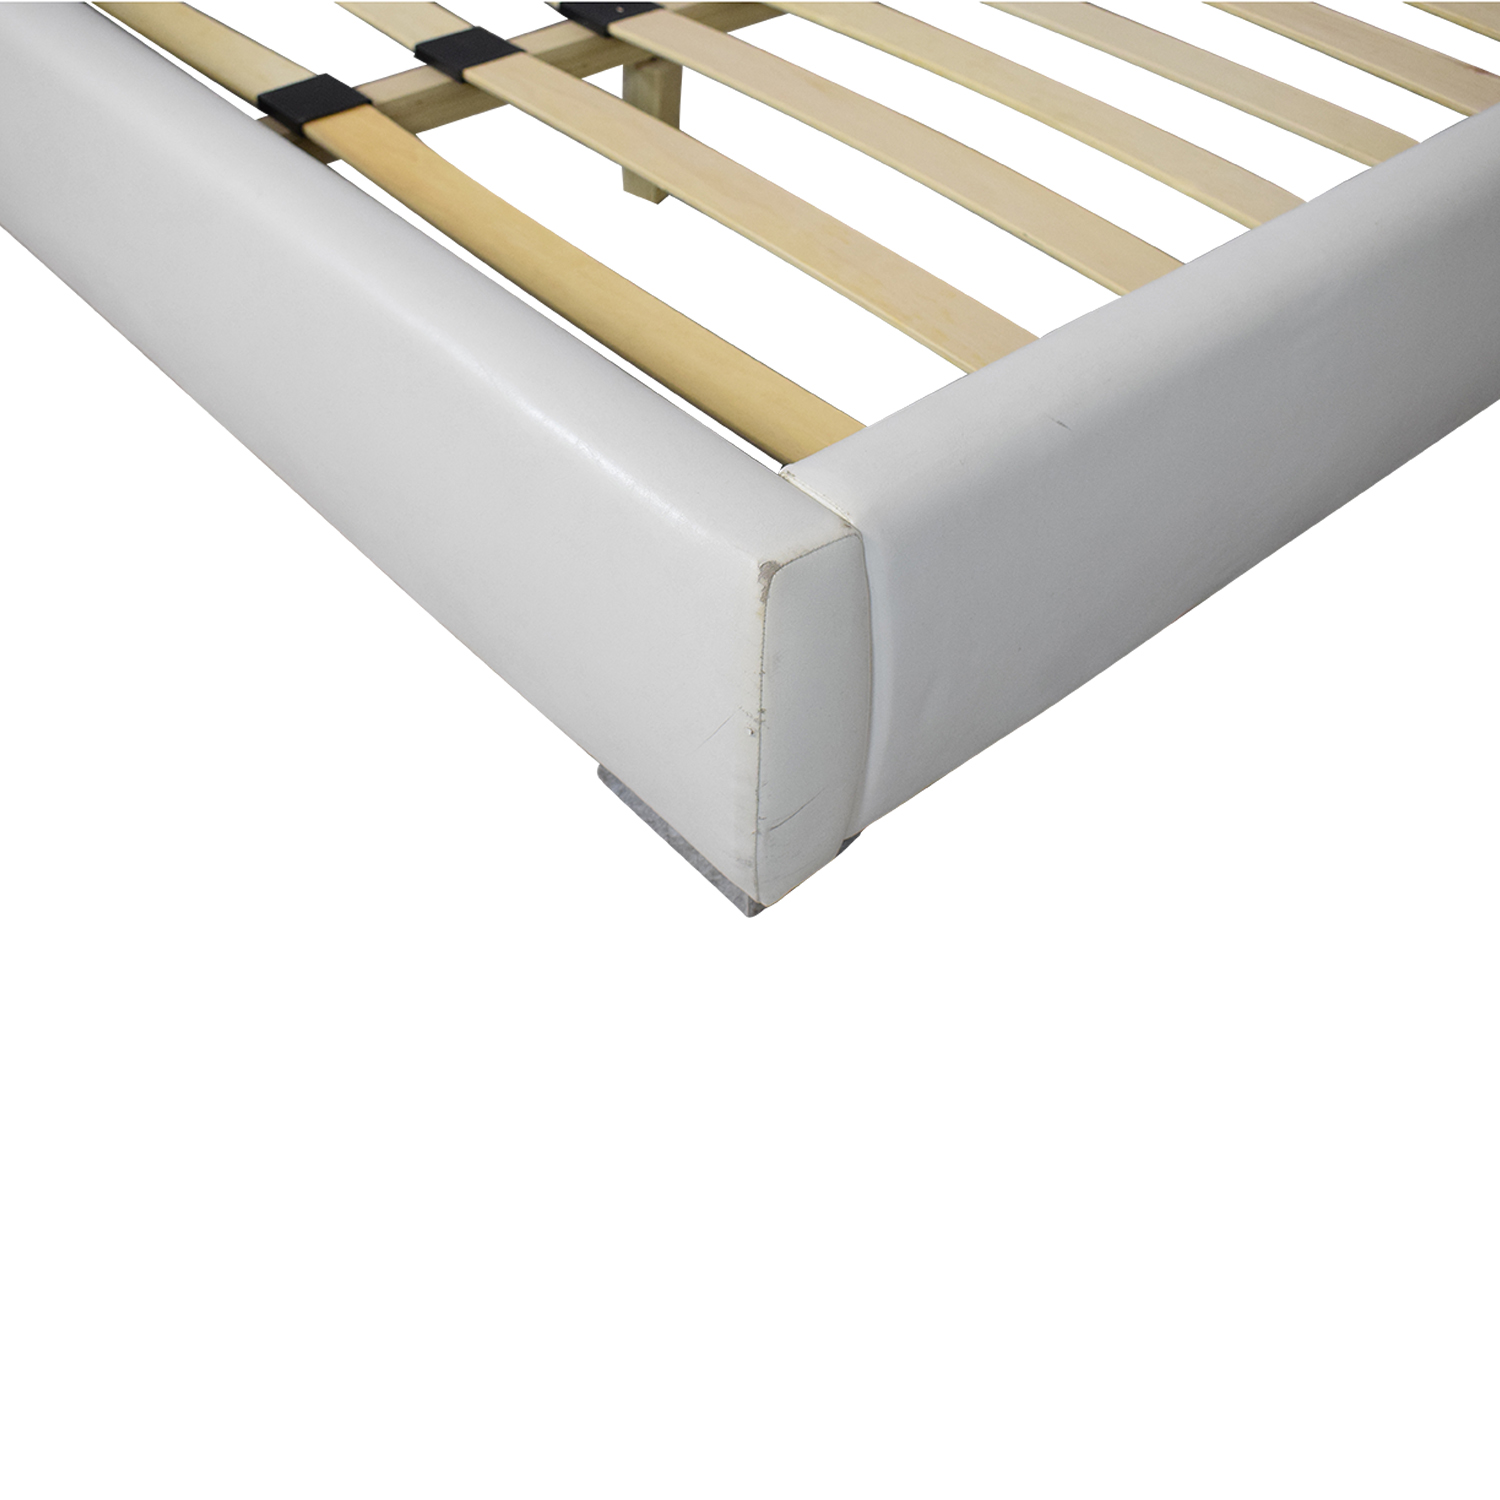 Jesalyn Platform Bed with Tufted Upholstered Headboard Full pa